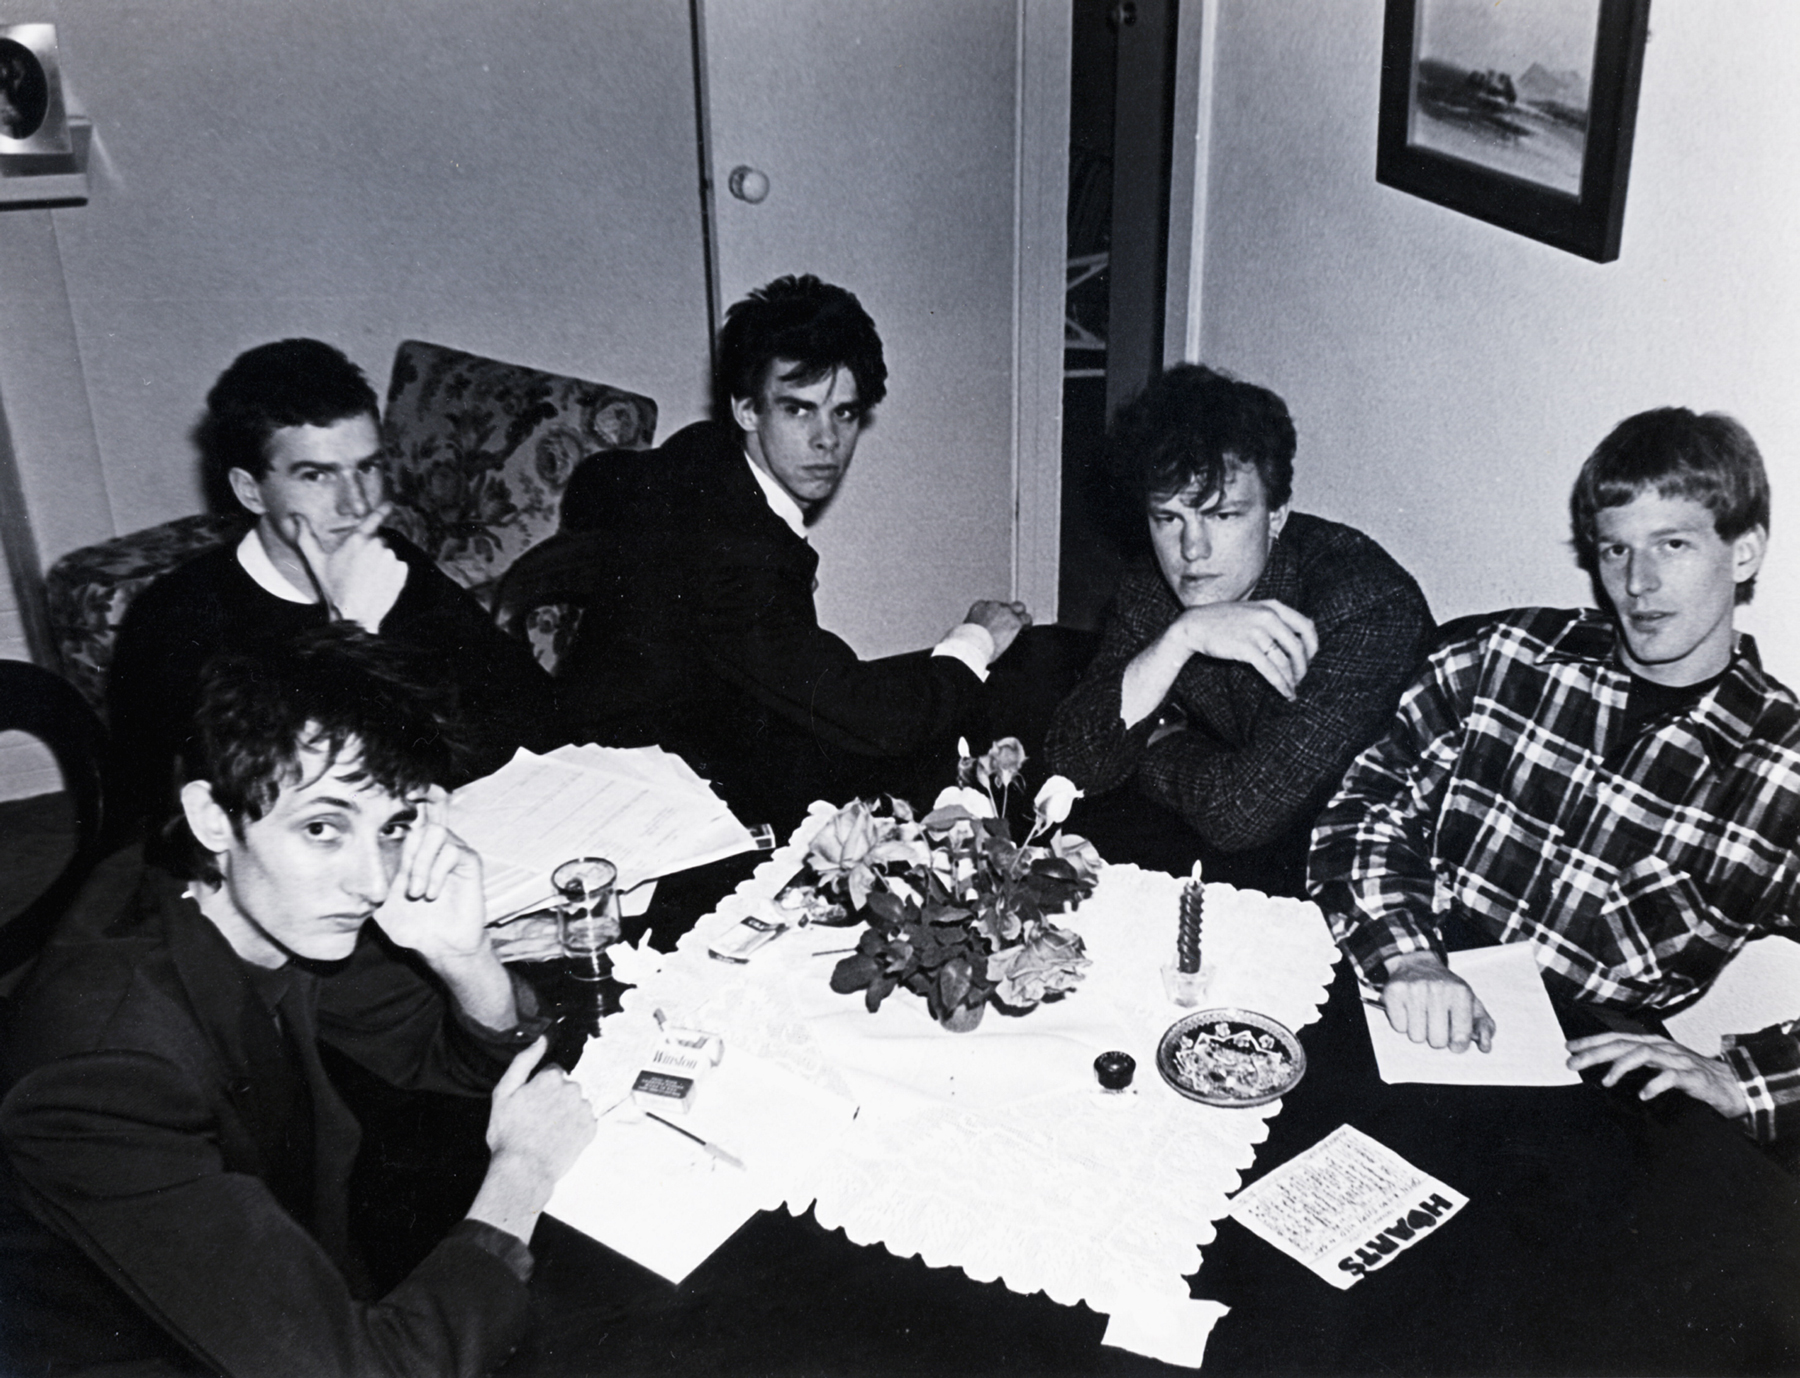 Photo of Nick Cave and Boys Next Door (L-R): Rowland S Howard, Mick Harvey, Nick Cave, Tracy Pew, and Phill Calvert.